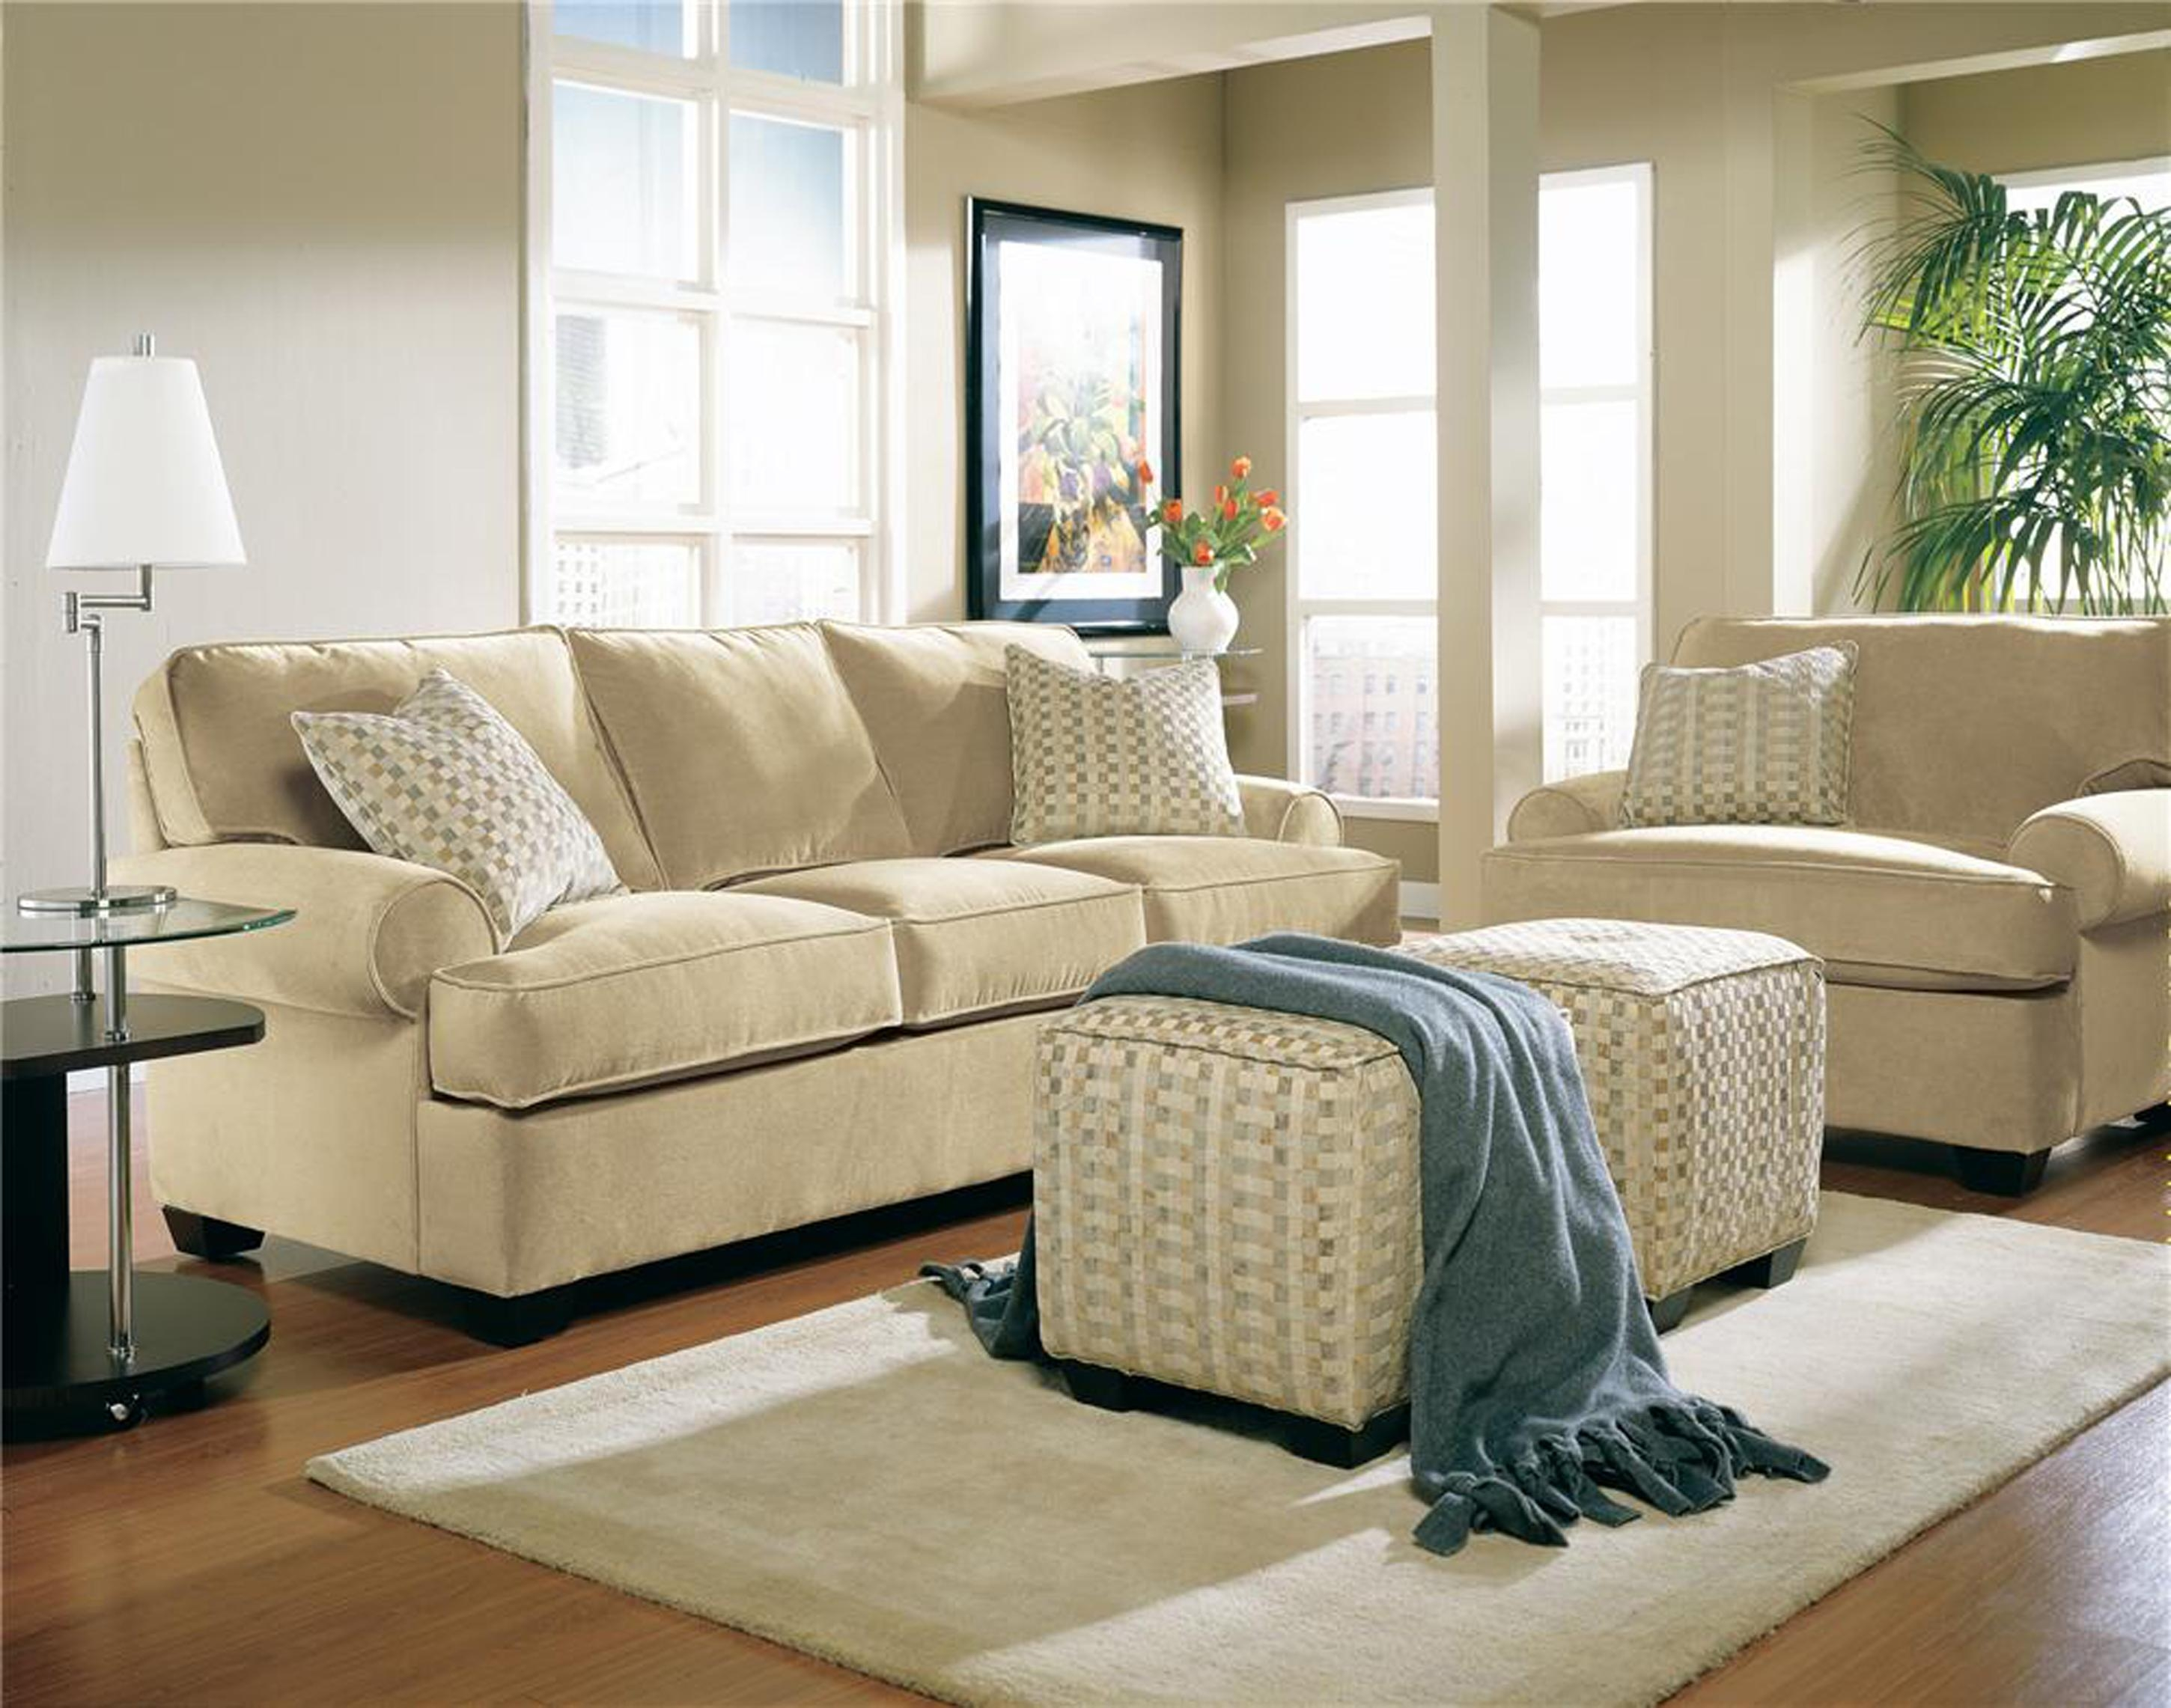 Cream Living Room Furniture – Living Room Within Cream Colored Sofas (Image 8 of 20)